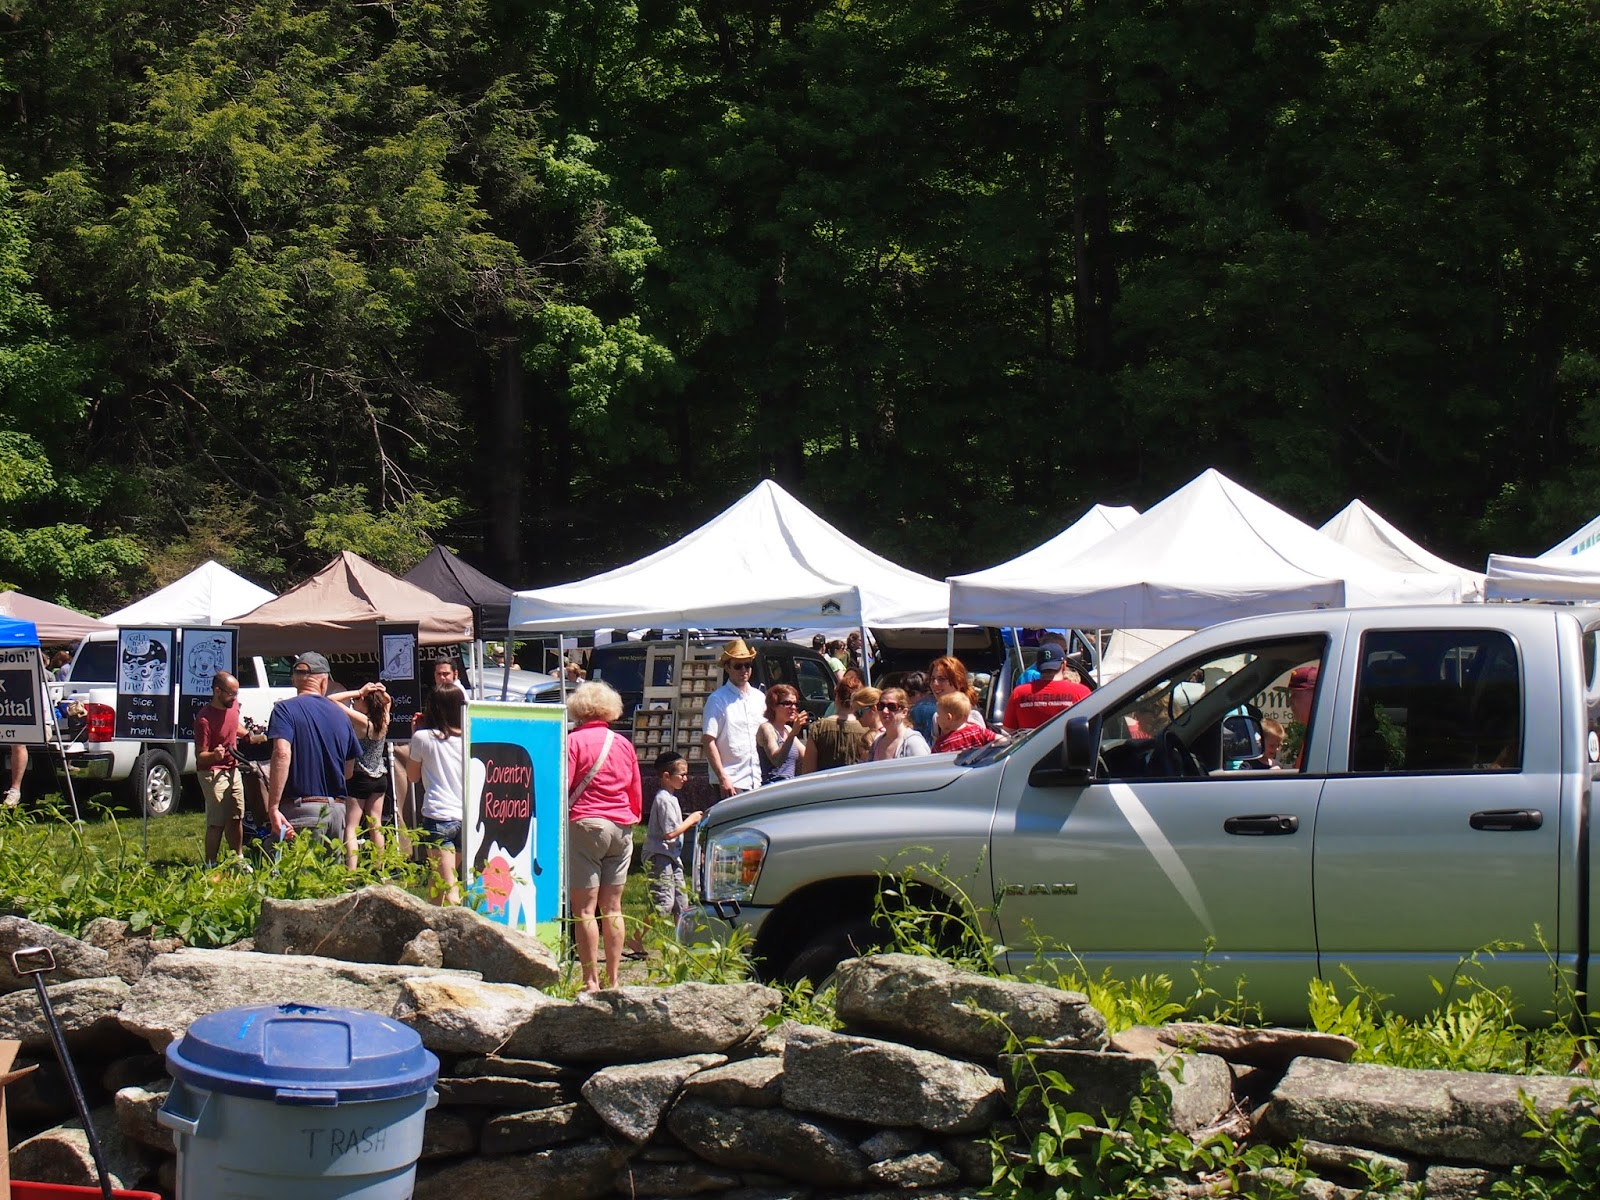 The Coventry Farmers Market in Connecticut